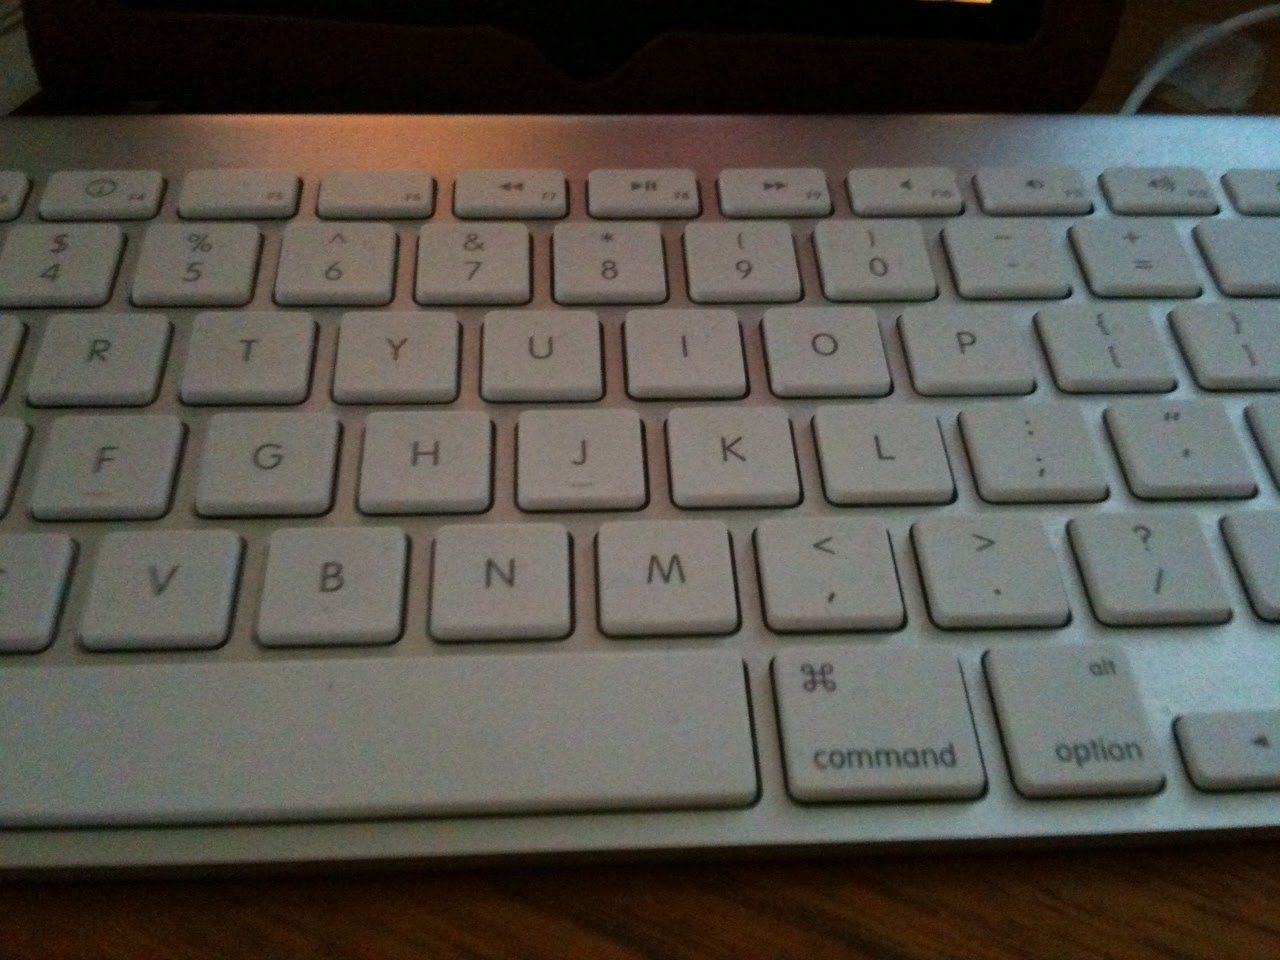 Granny Joan S Hitek Lady Blog Bluetooth Keyboard Shortcuts That Work With Ipad Iphone Devices